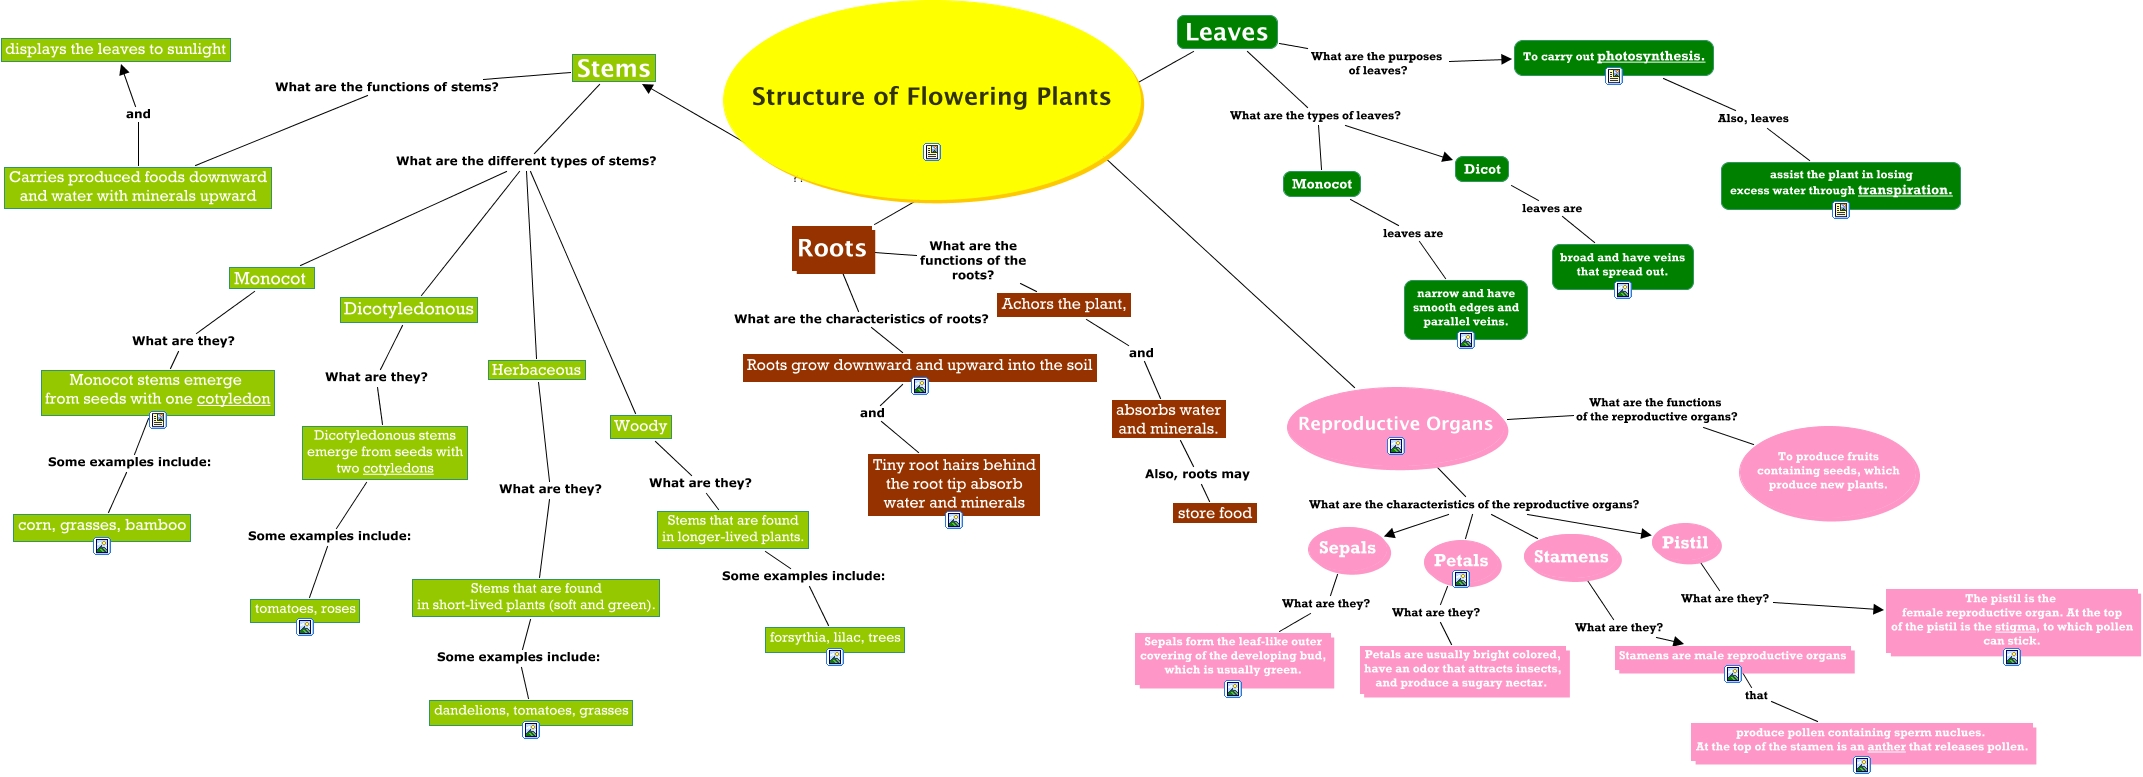 Flower Concept Map.The Structure Of Flowering Plants